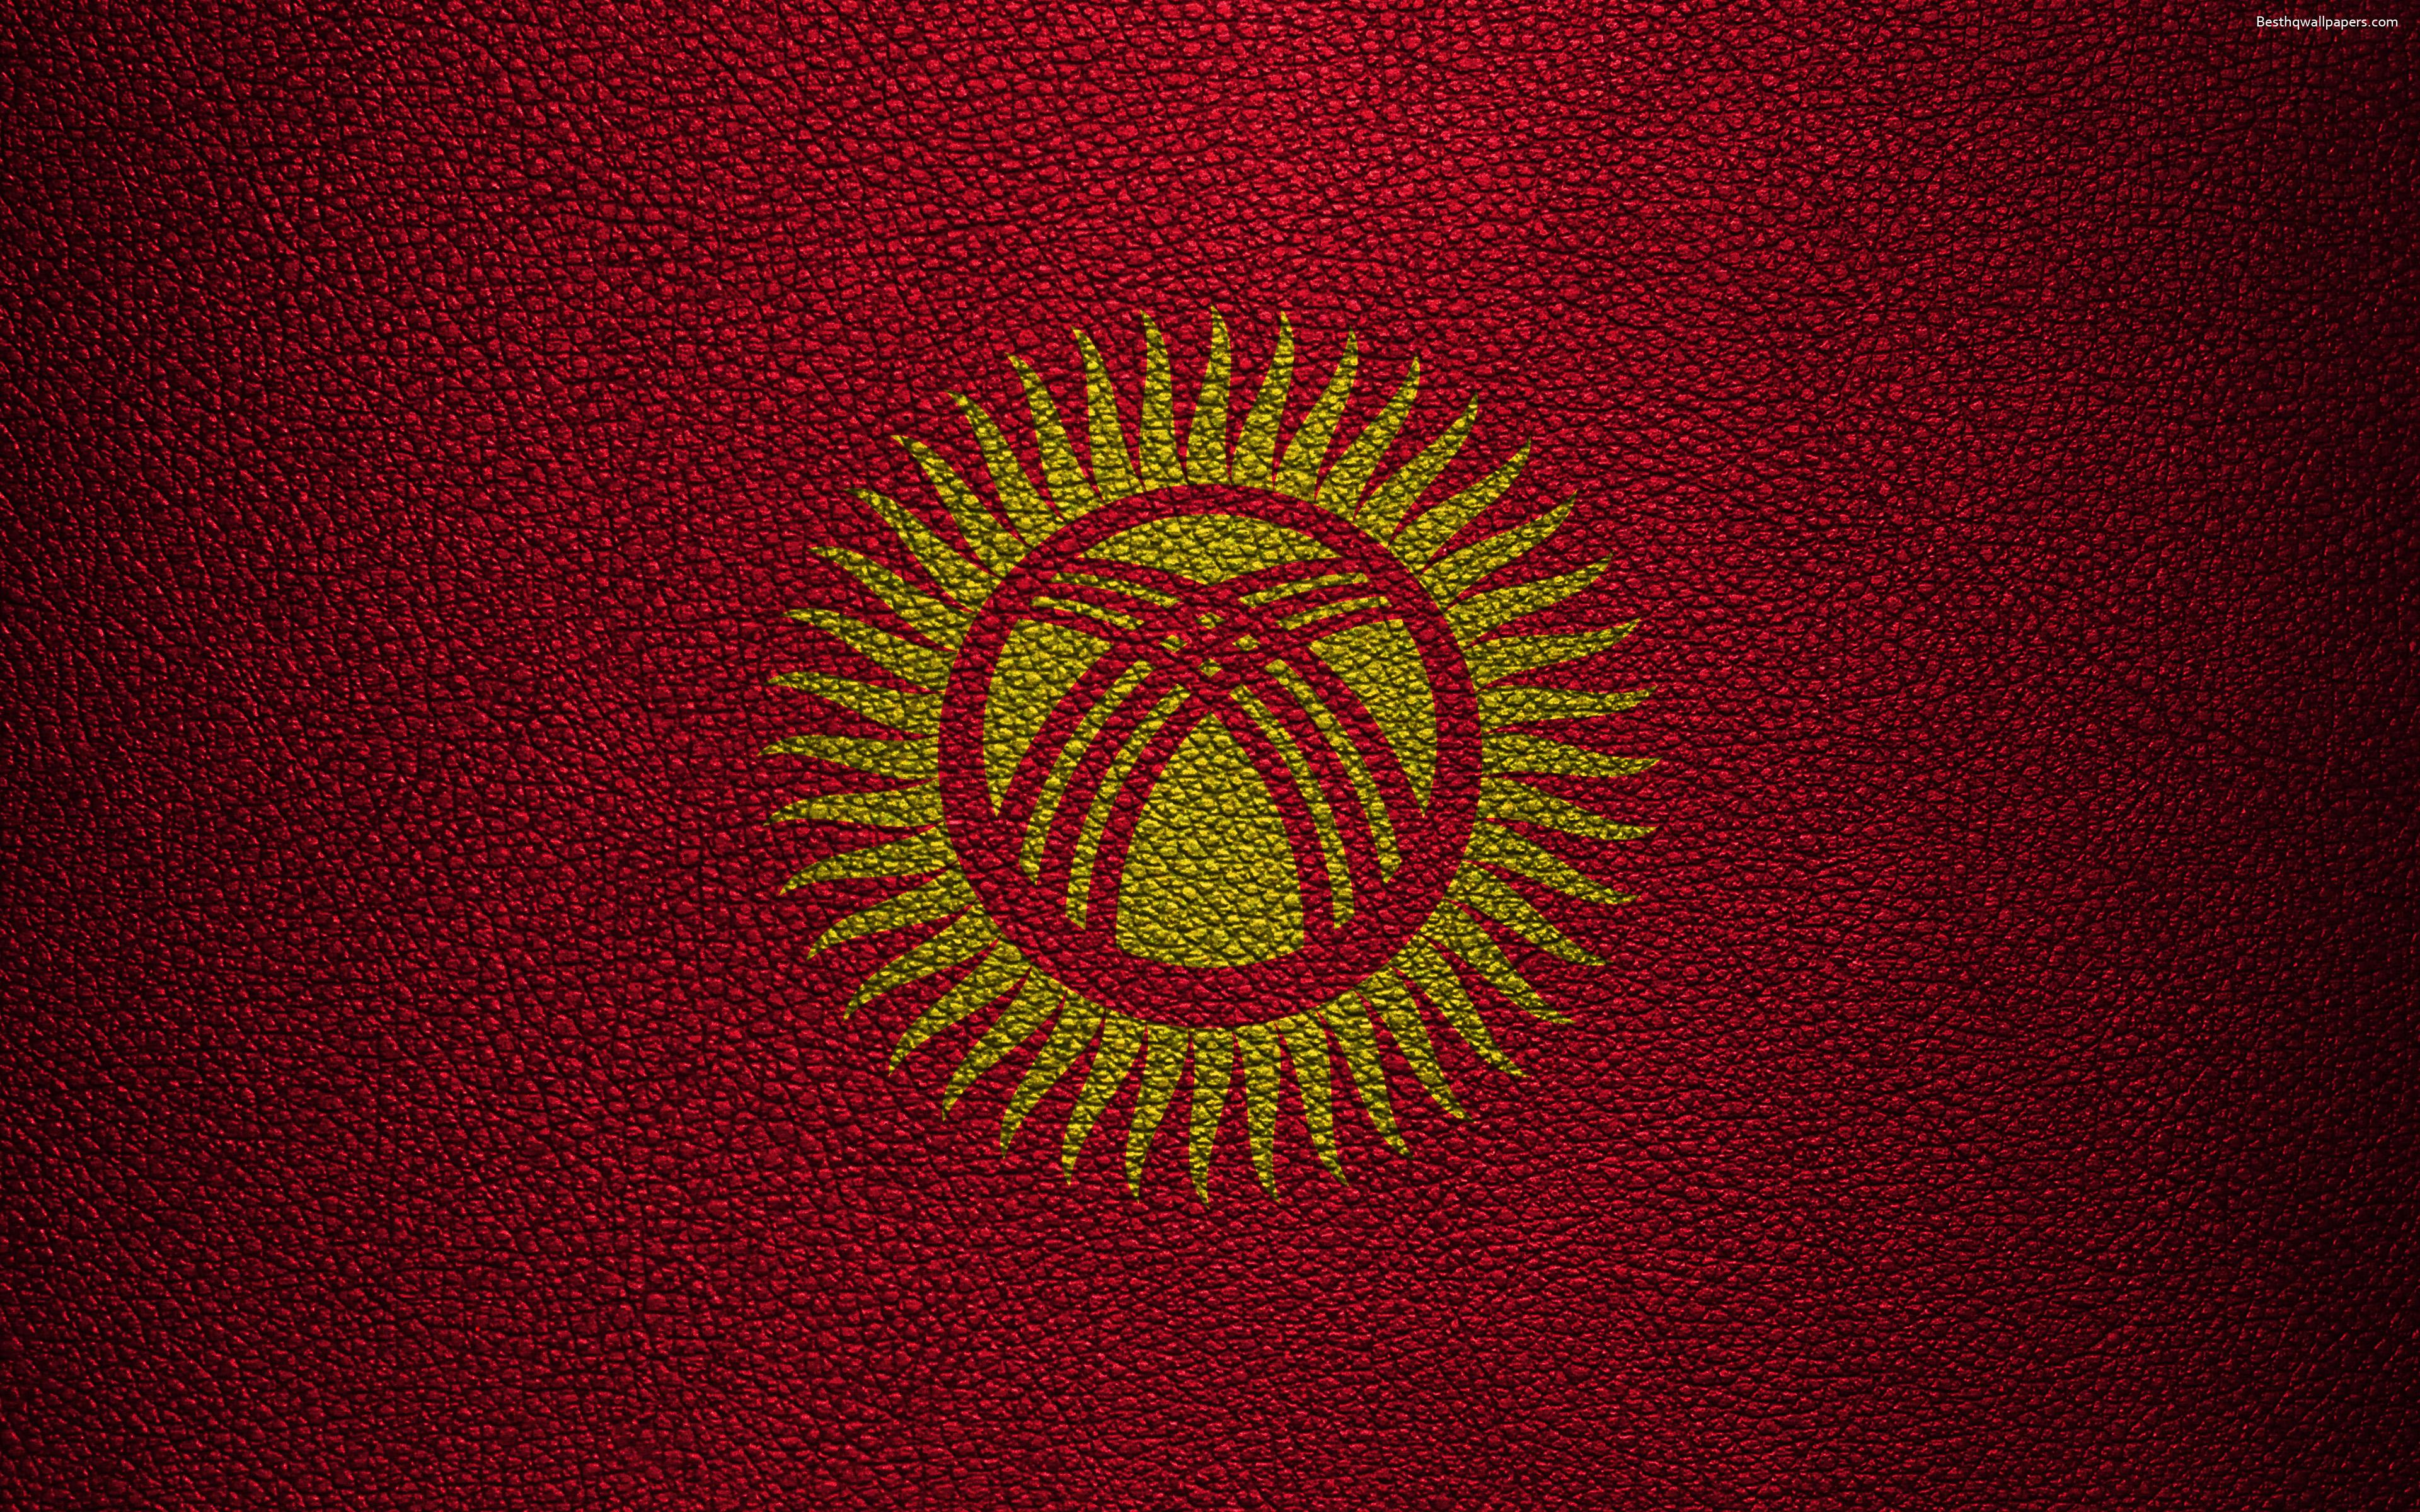 Download wallpapers Flag of Kyrgyzstan, 4K, leather texture, Kyrgyz